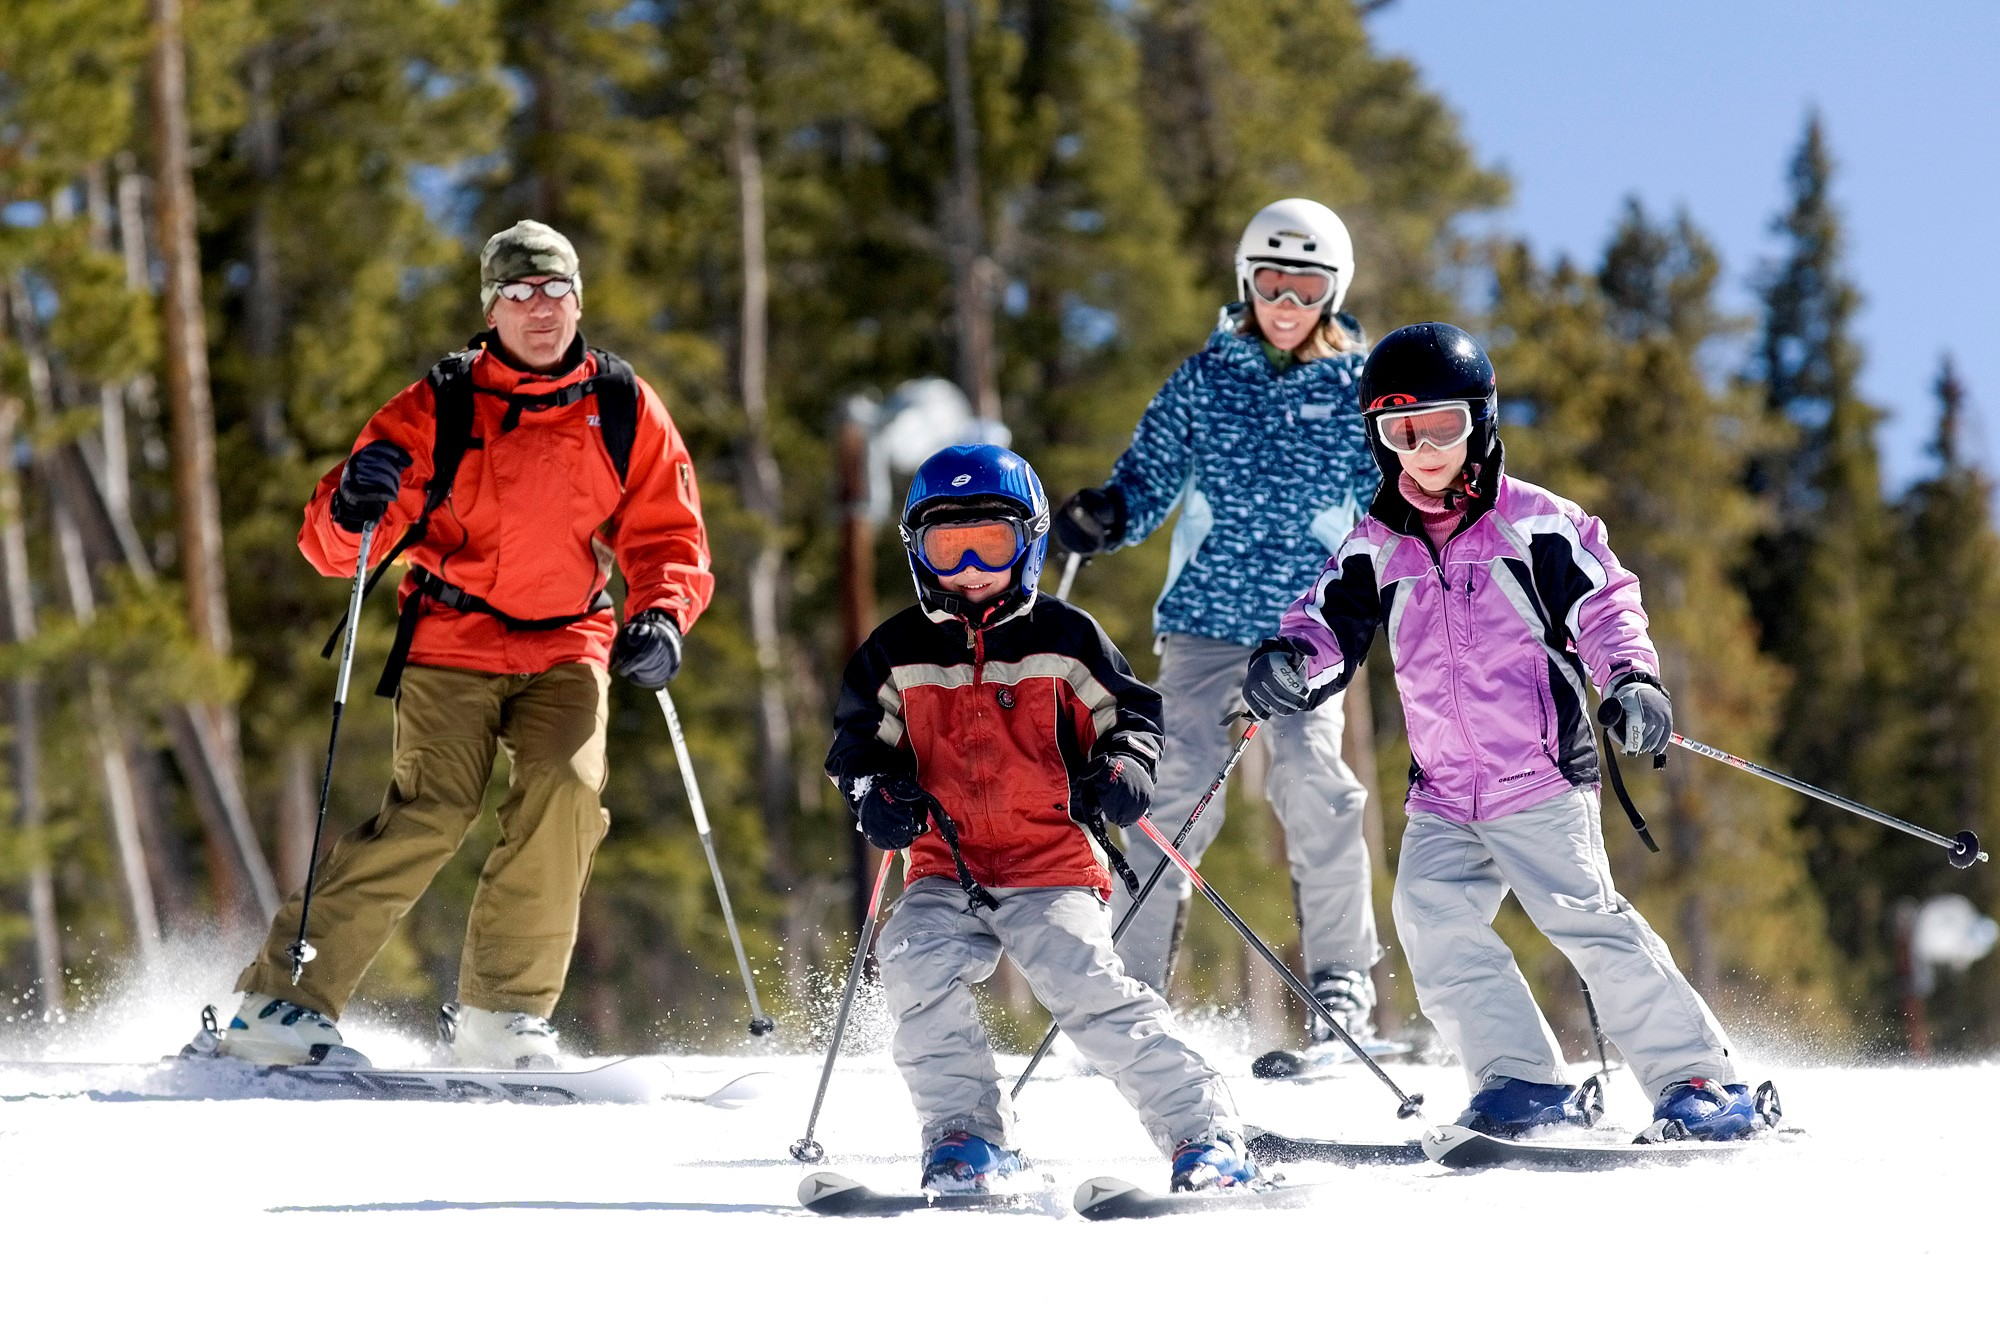 Skiers family